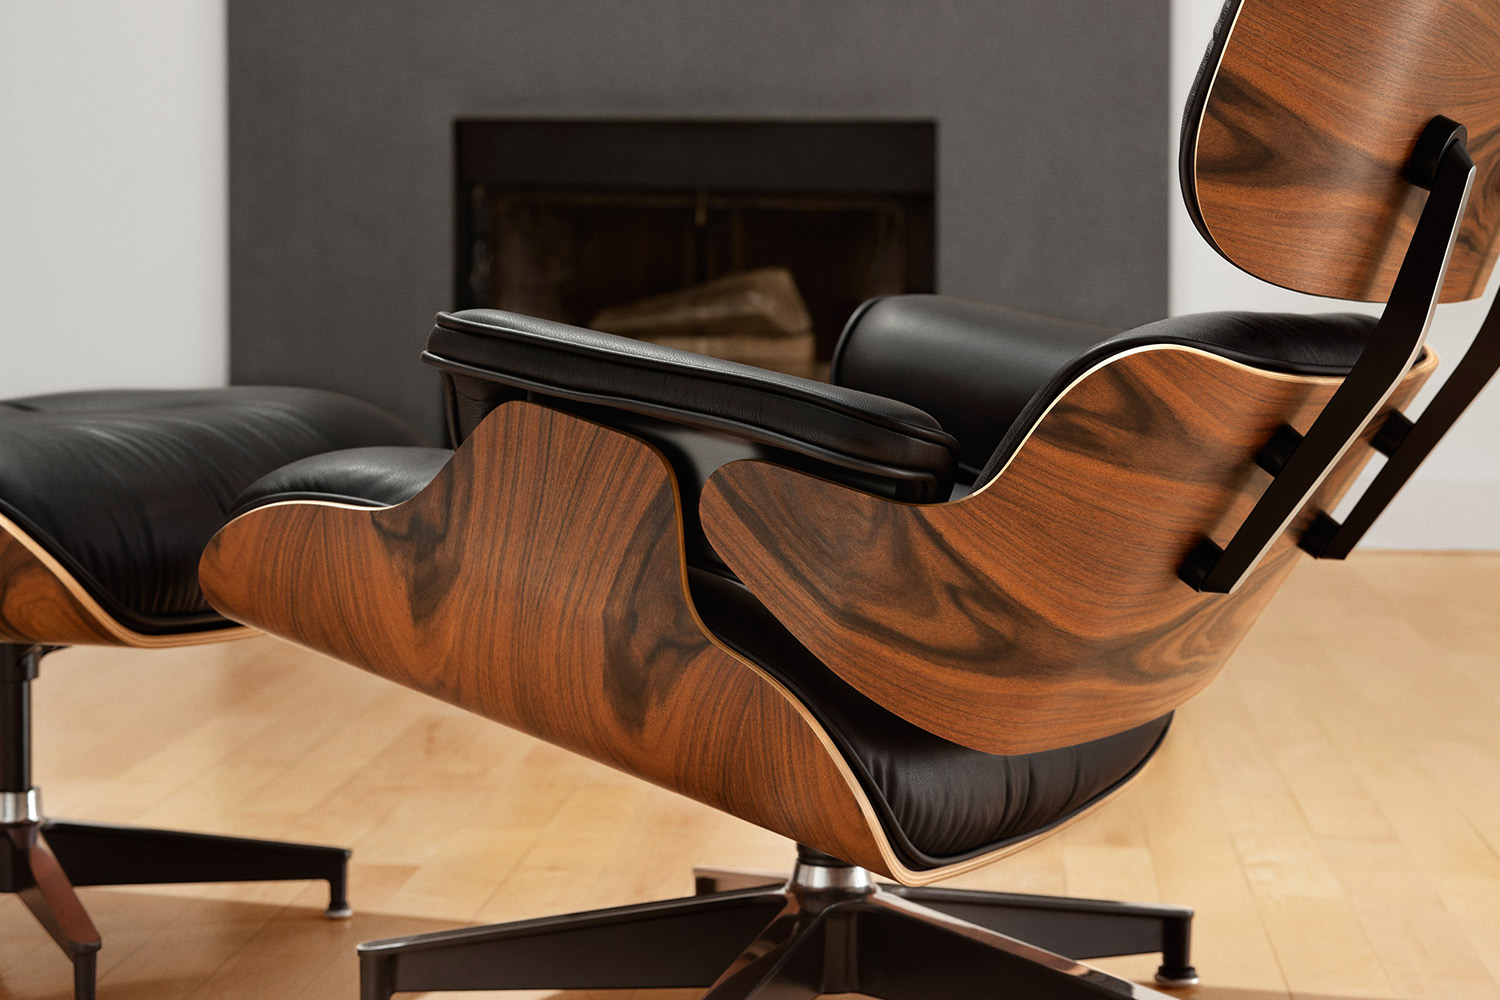 De Eames Stoel : How to tell if your eames lounge chair is real vs. fake u2014 my eames